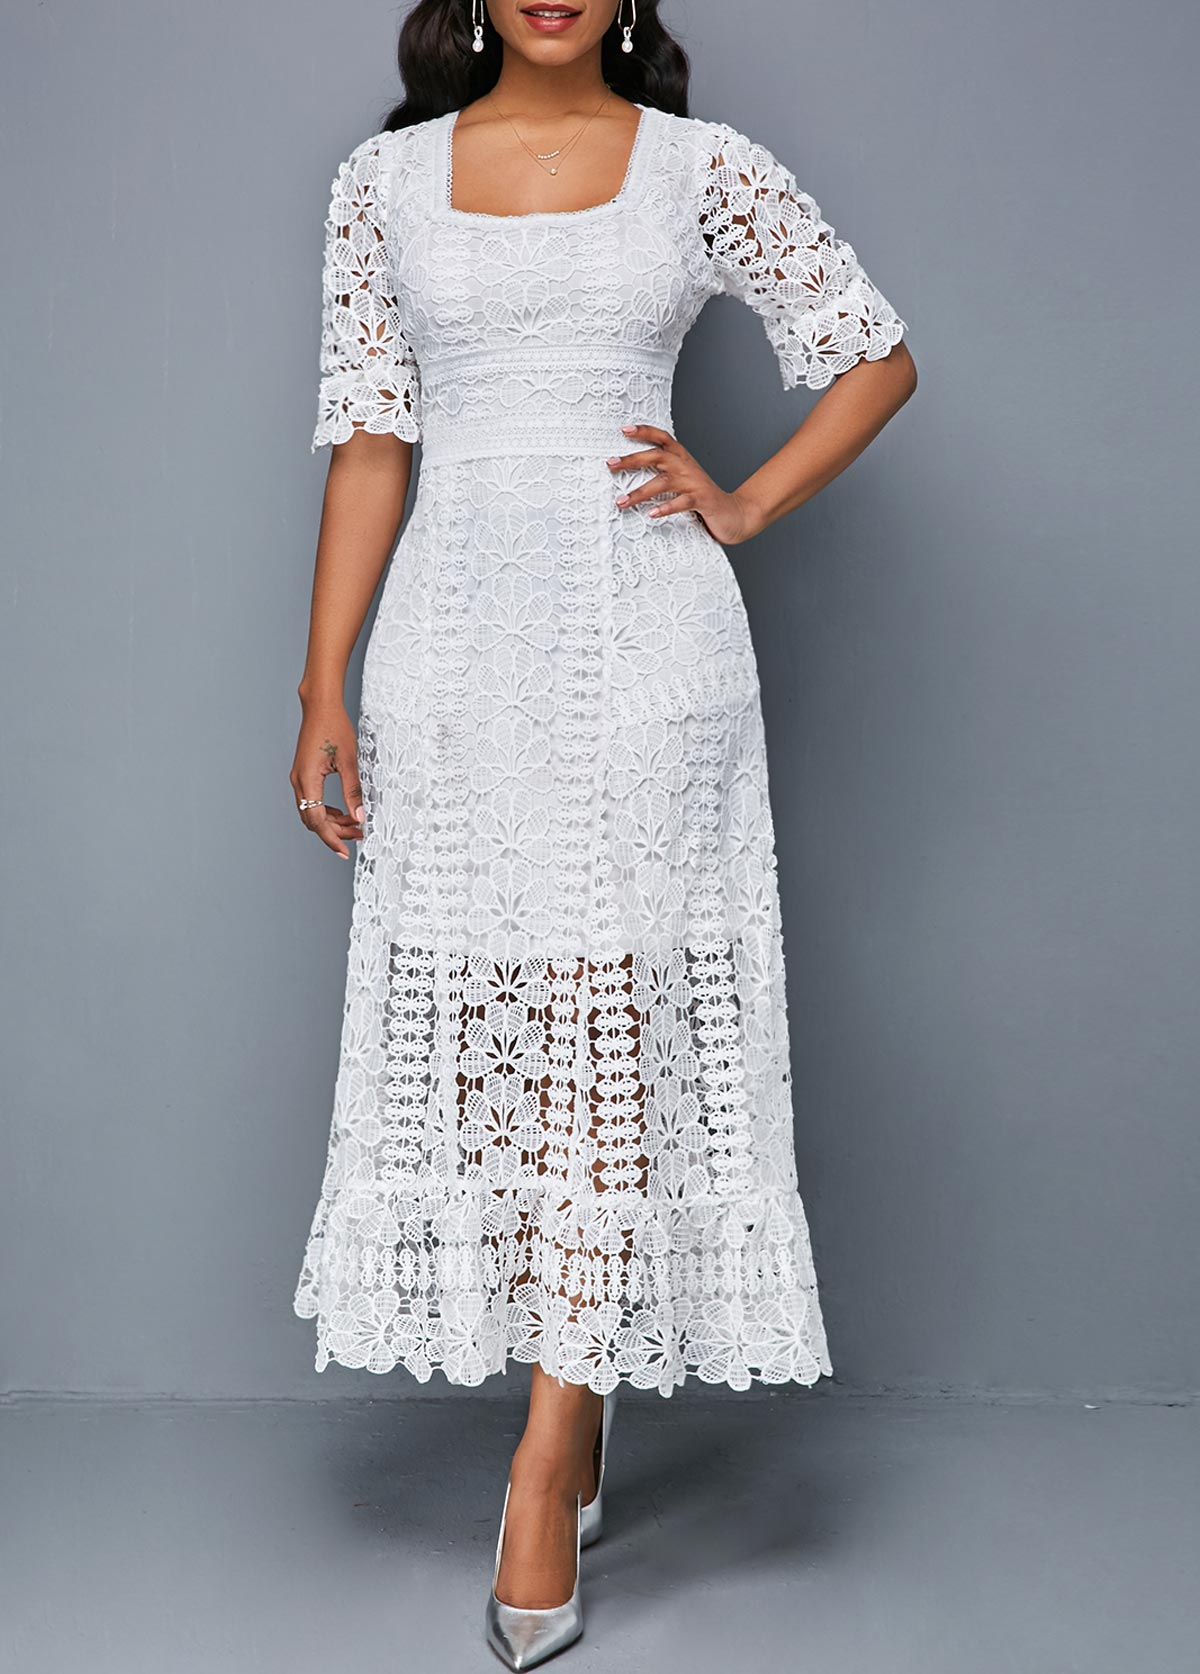 Square Collar White Short Sleeve Lace Dress